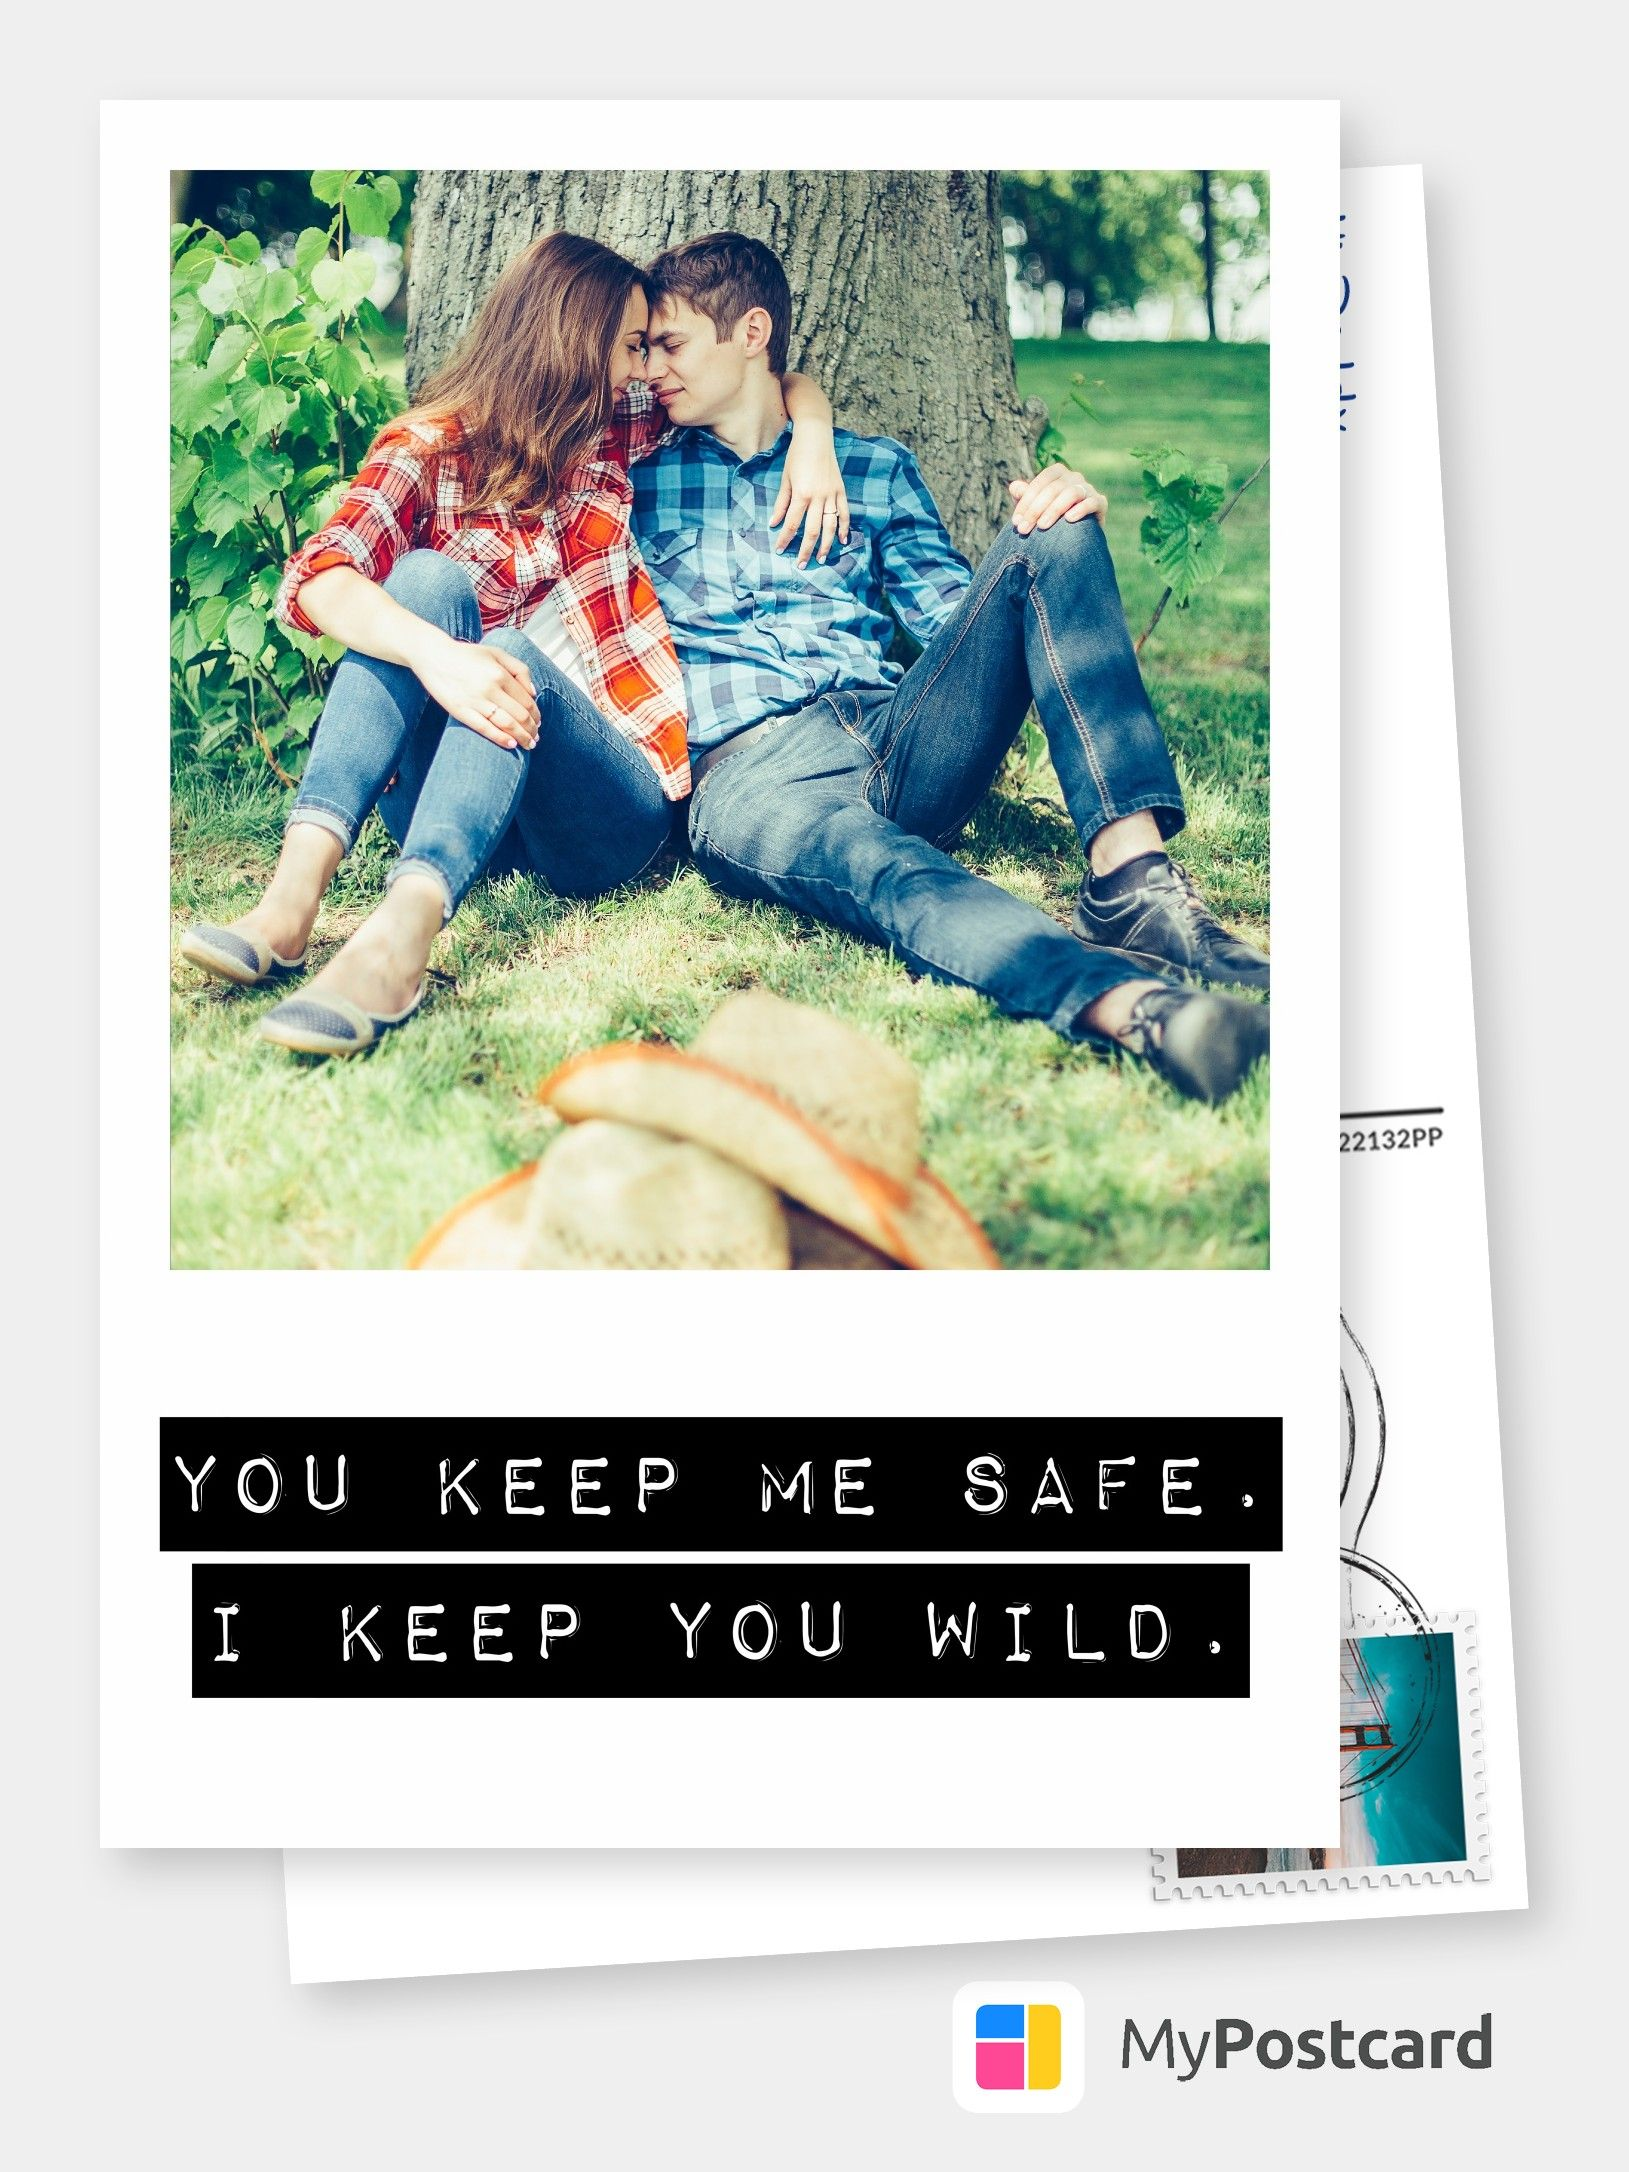 Create Your Own I Love You Photo Cards Online Printed Mailed For You International Free Shipping Print Your I Love You Photo Cards Customized Photo Ca